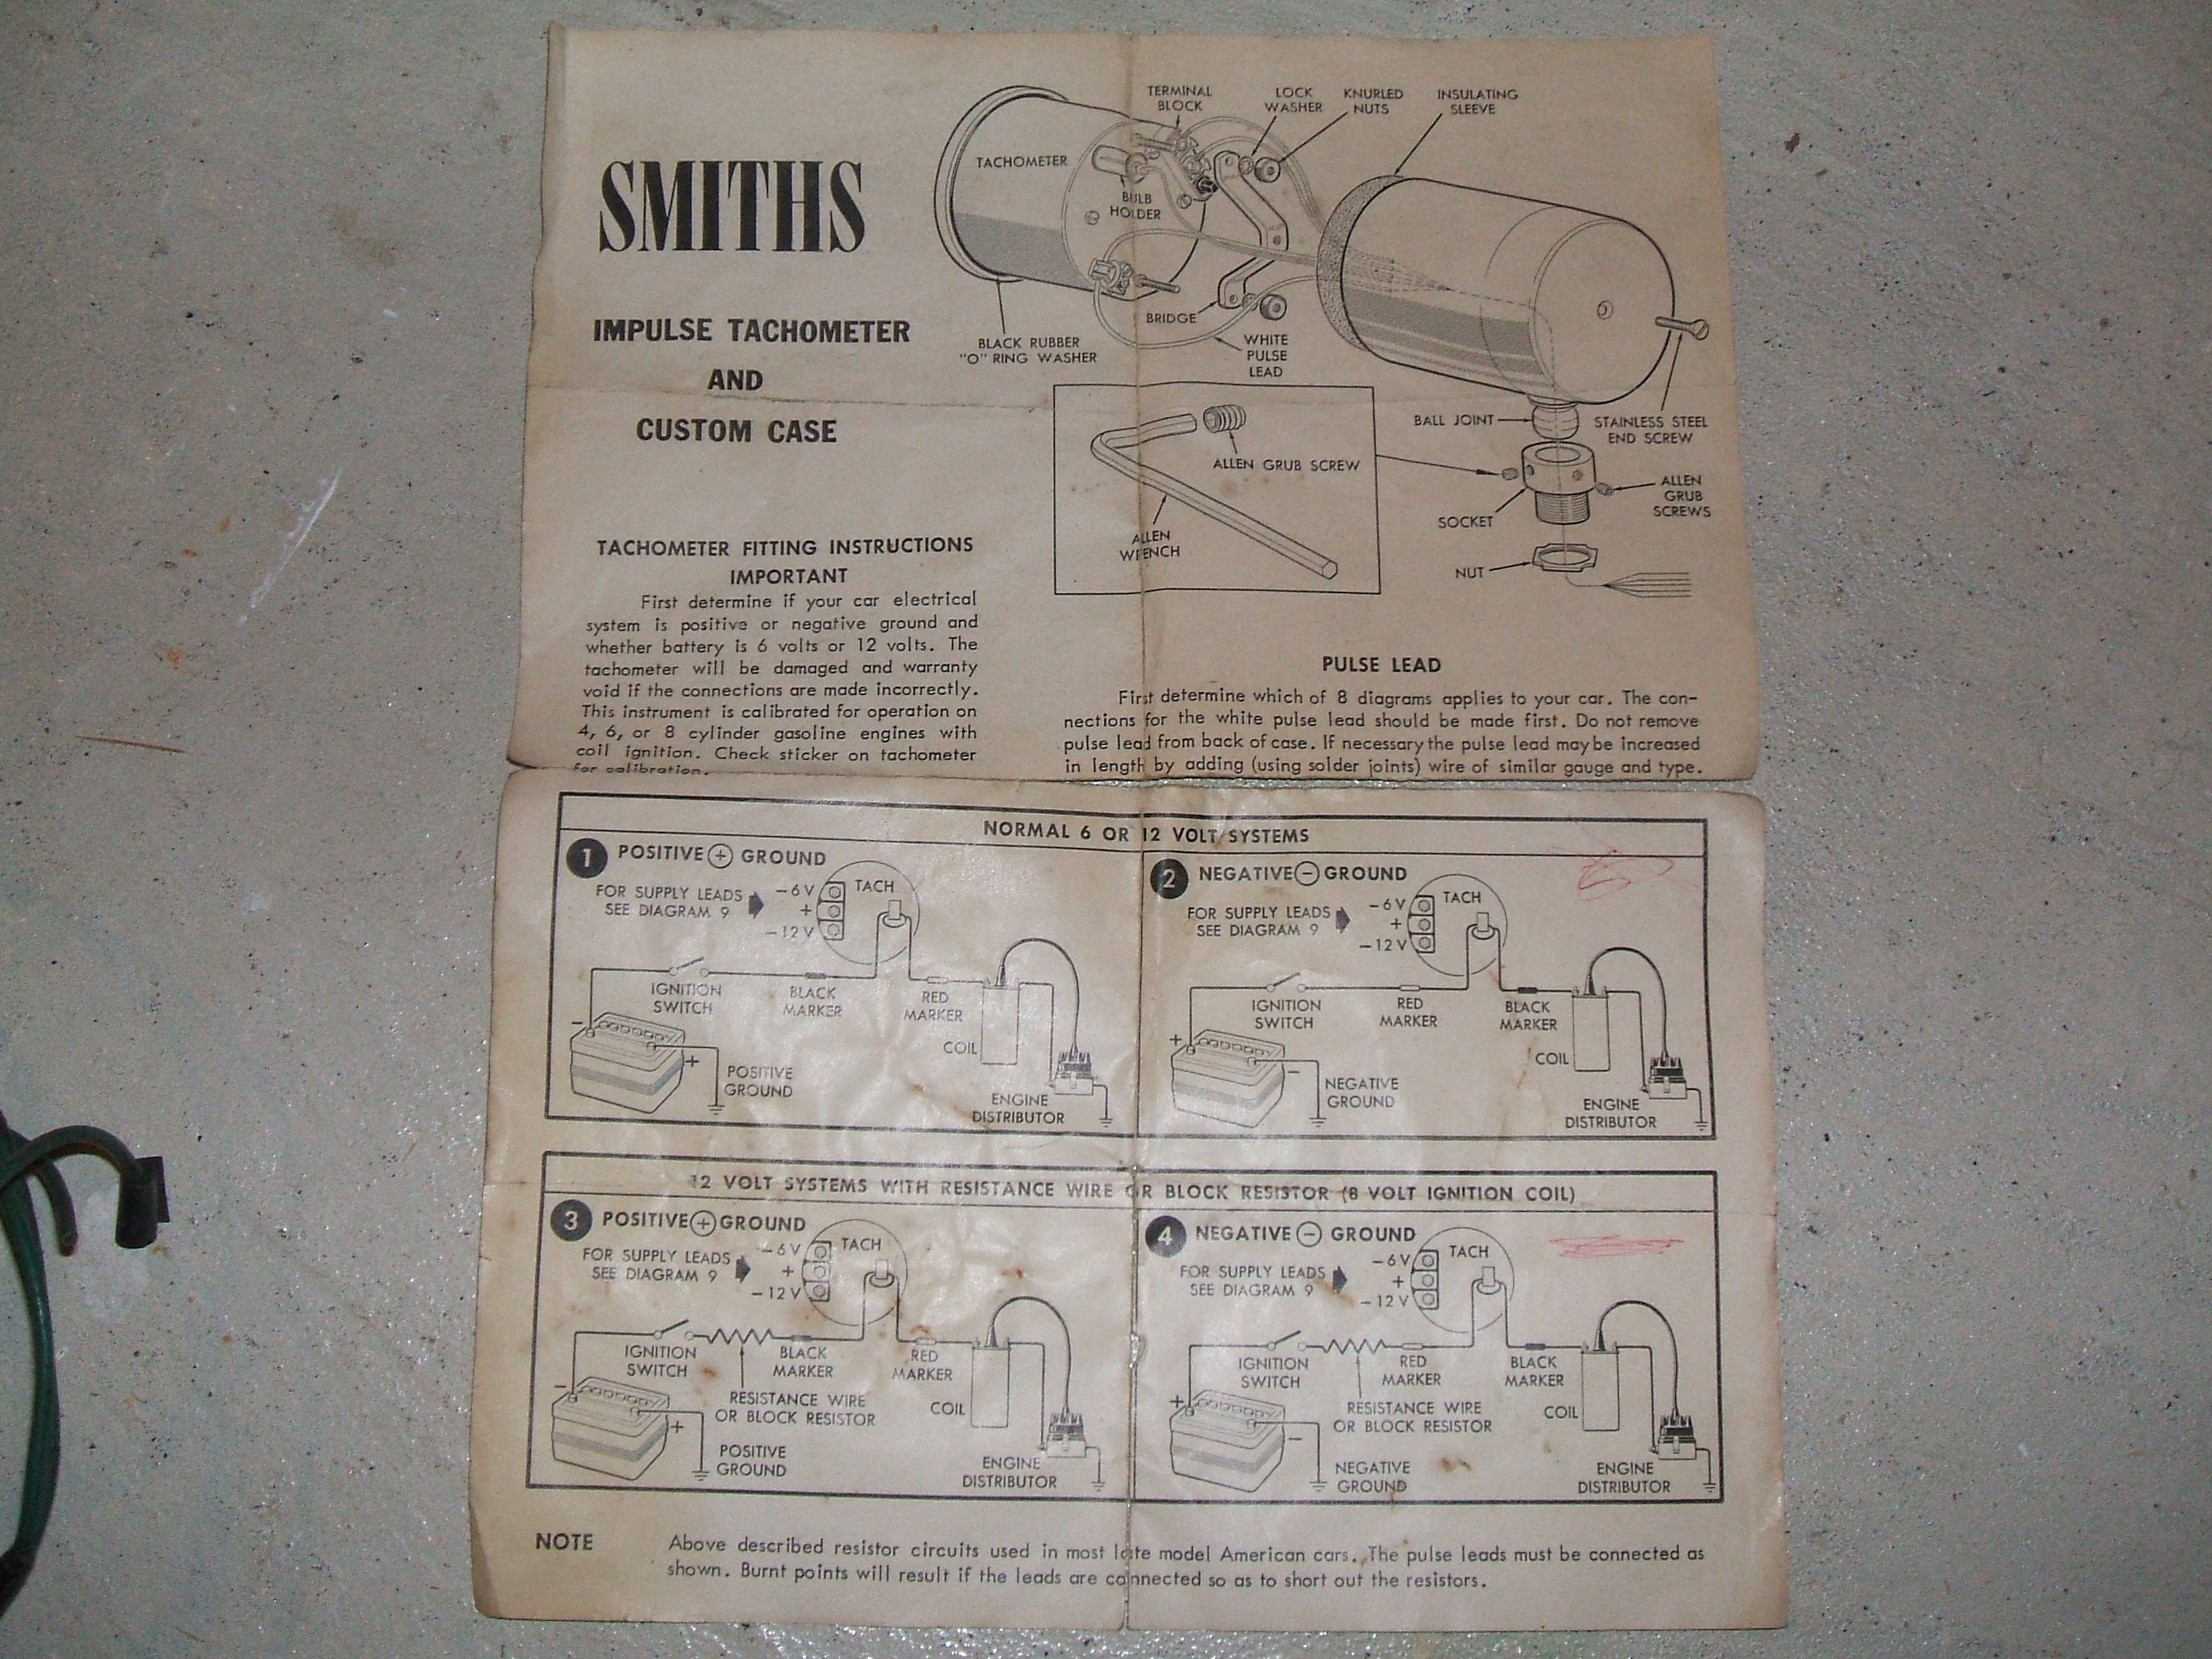 6 Volt Tachometer Positive Ground Wiring Diagram Libraries Smiths For Sale Vintage U0026 12 Cars Saleedited May 15